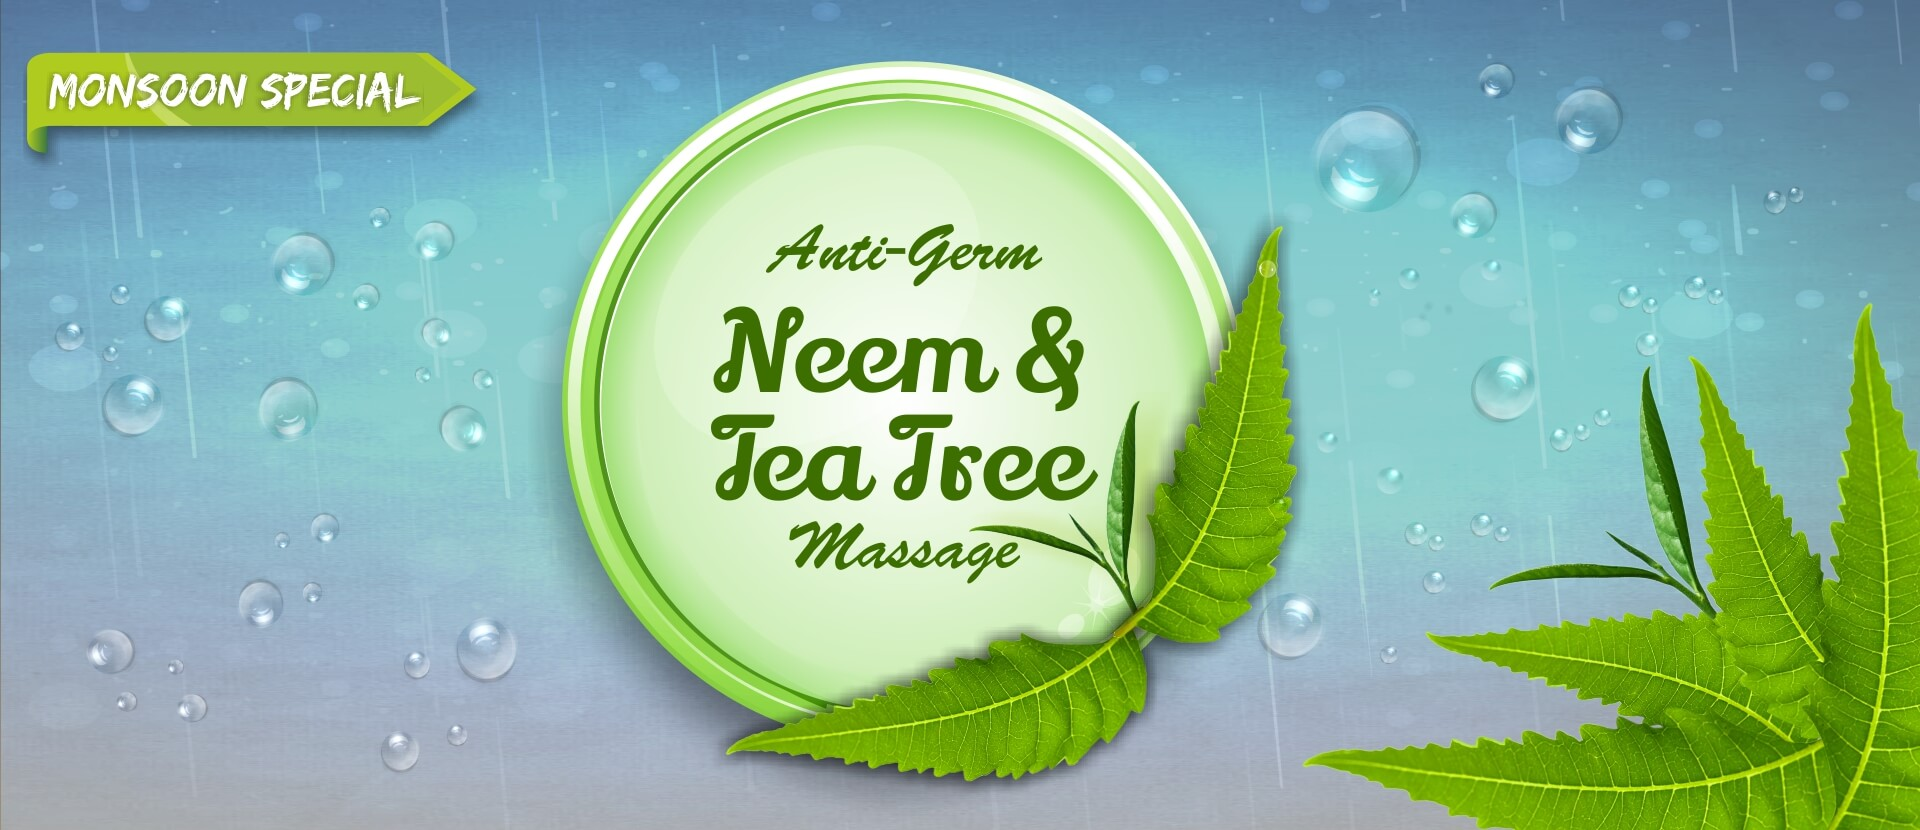 Monsoon Special - Anti-Germ Neem & Tea Tree Massage